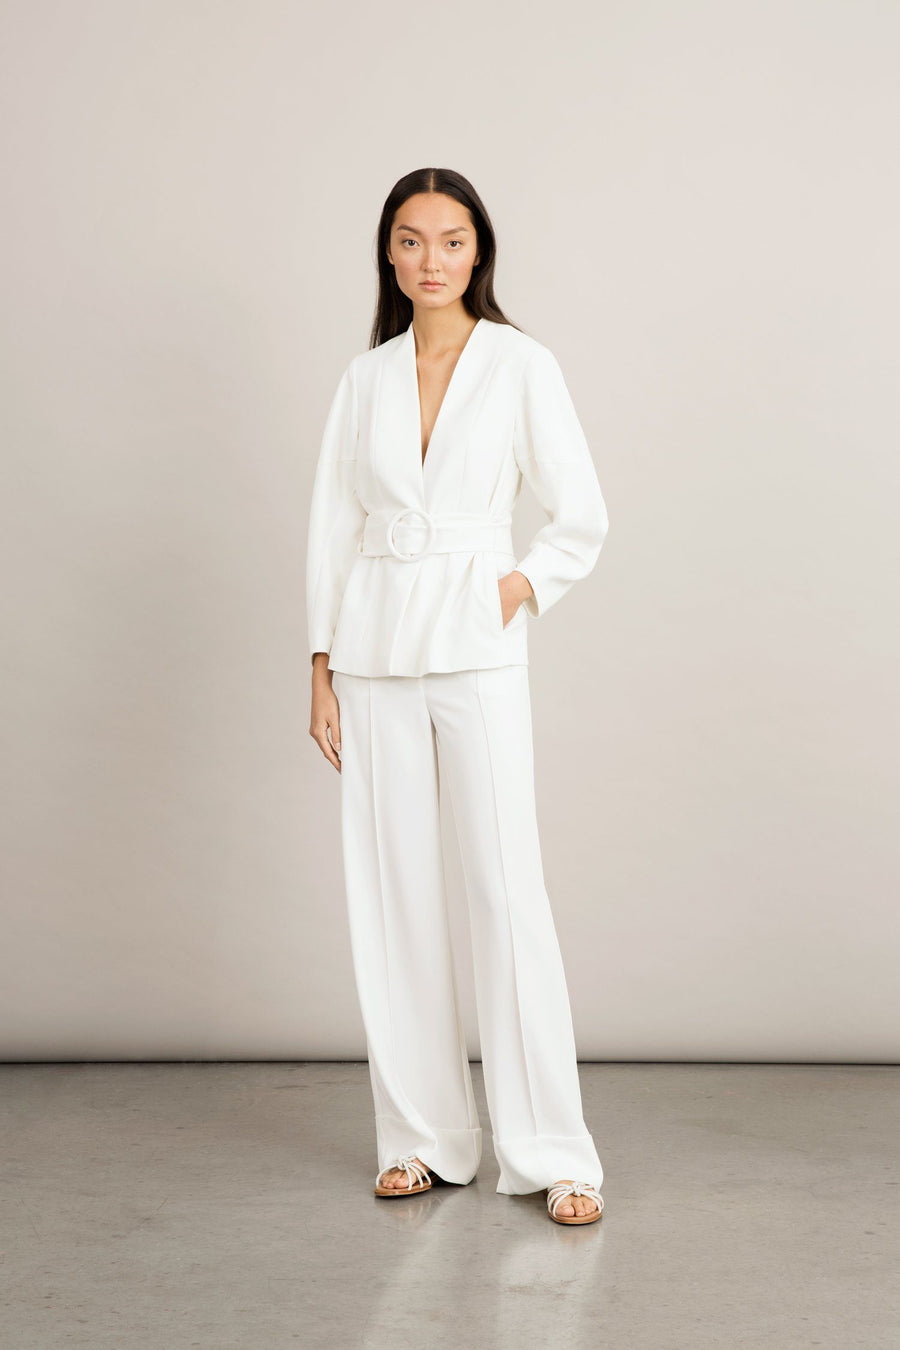 BOGAR TROUSERS - WHITE Trousers Stylein